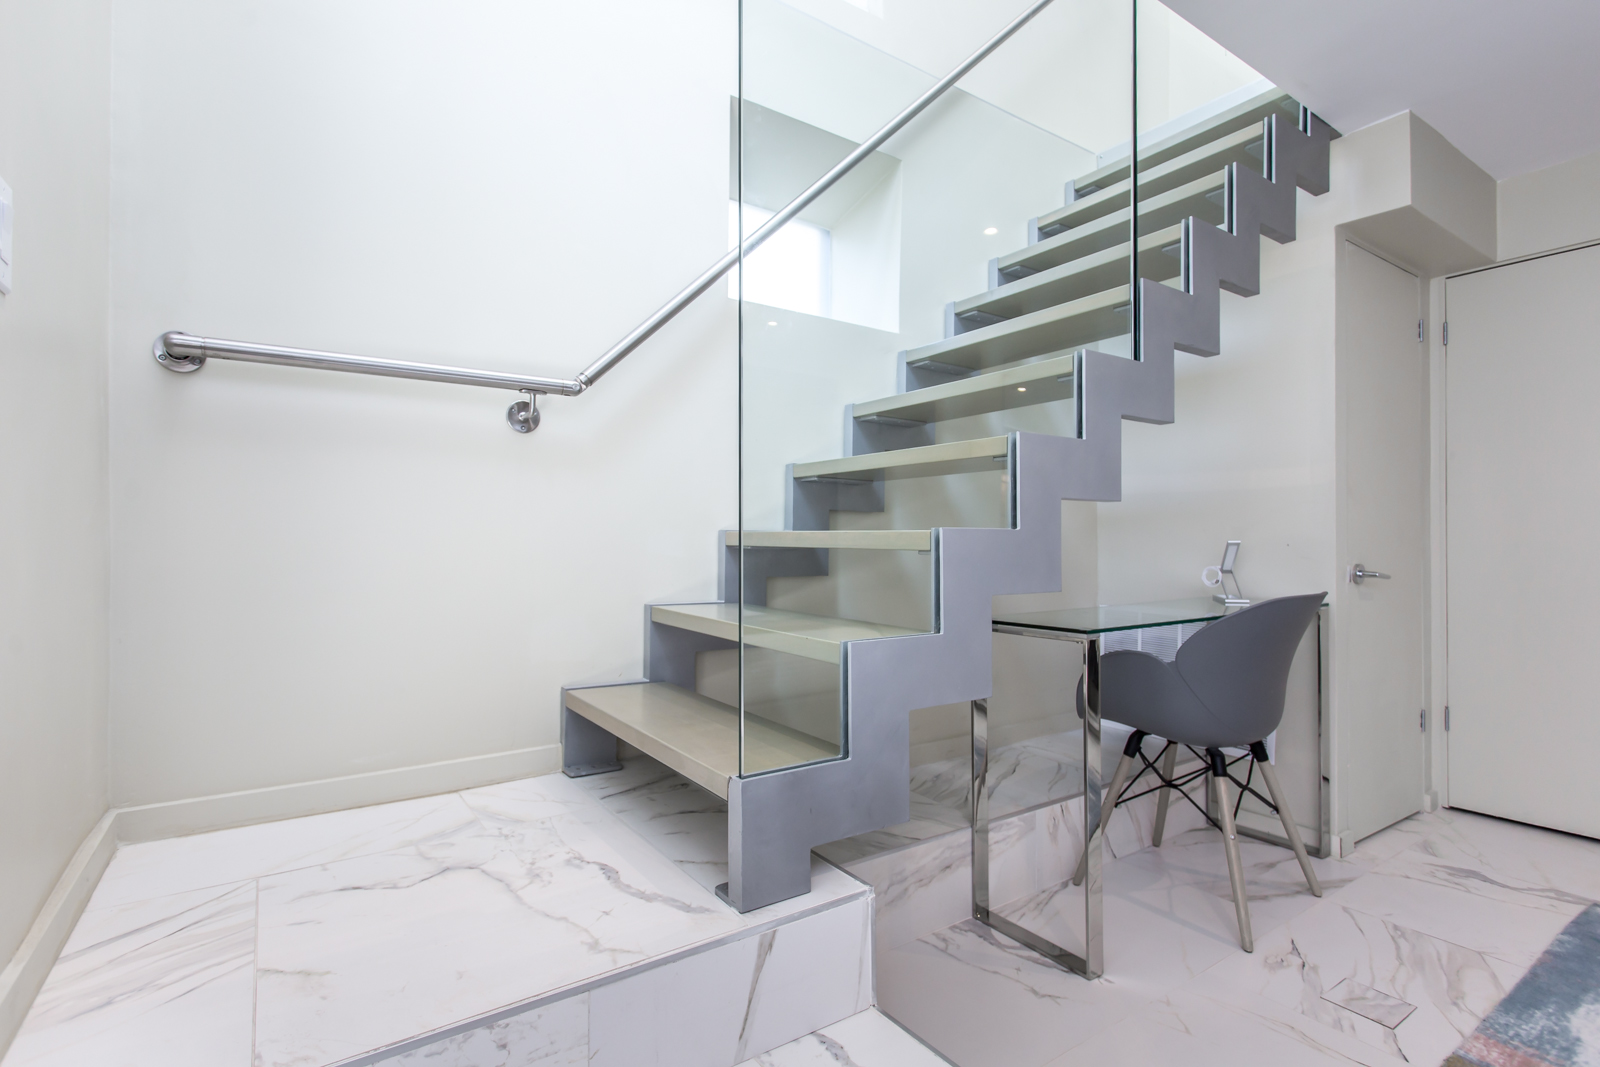 Another angle of staircase and we also see the office desk and chair.